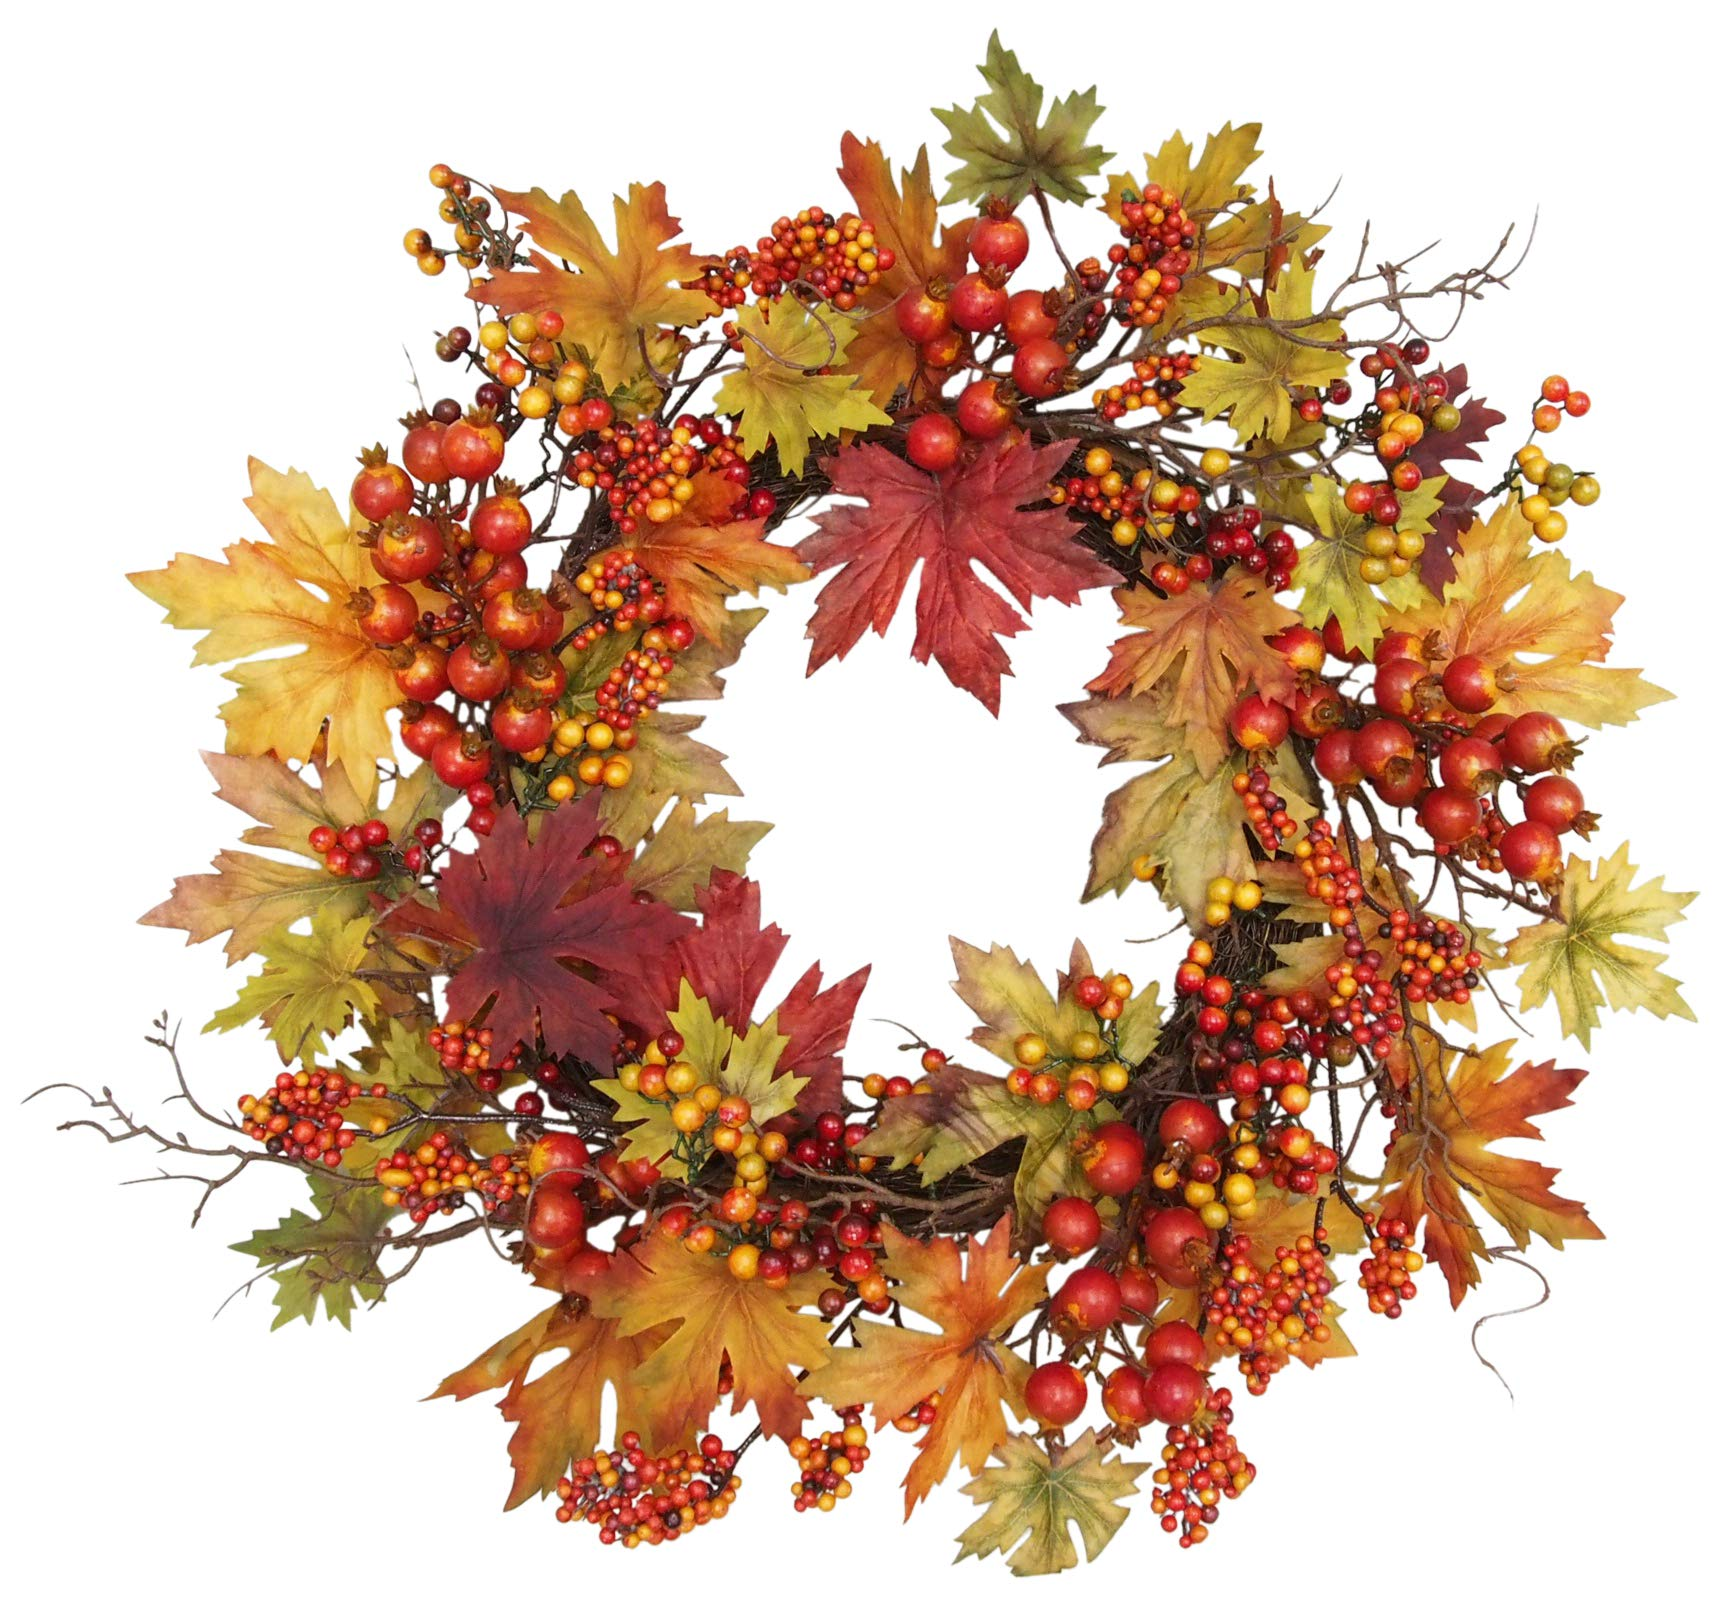 Ten Waterloo 24 Inch Fall and Thanksgiving Wreath - Artificial Maple Leaf Wreath with Berries on Twig Base by Ten Waterloo